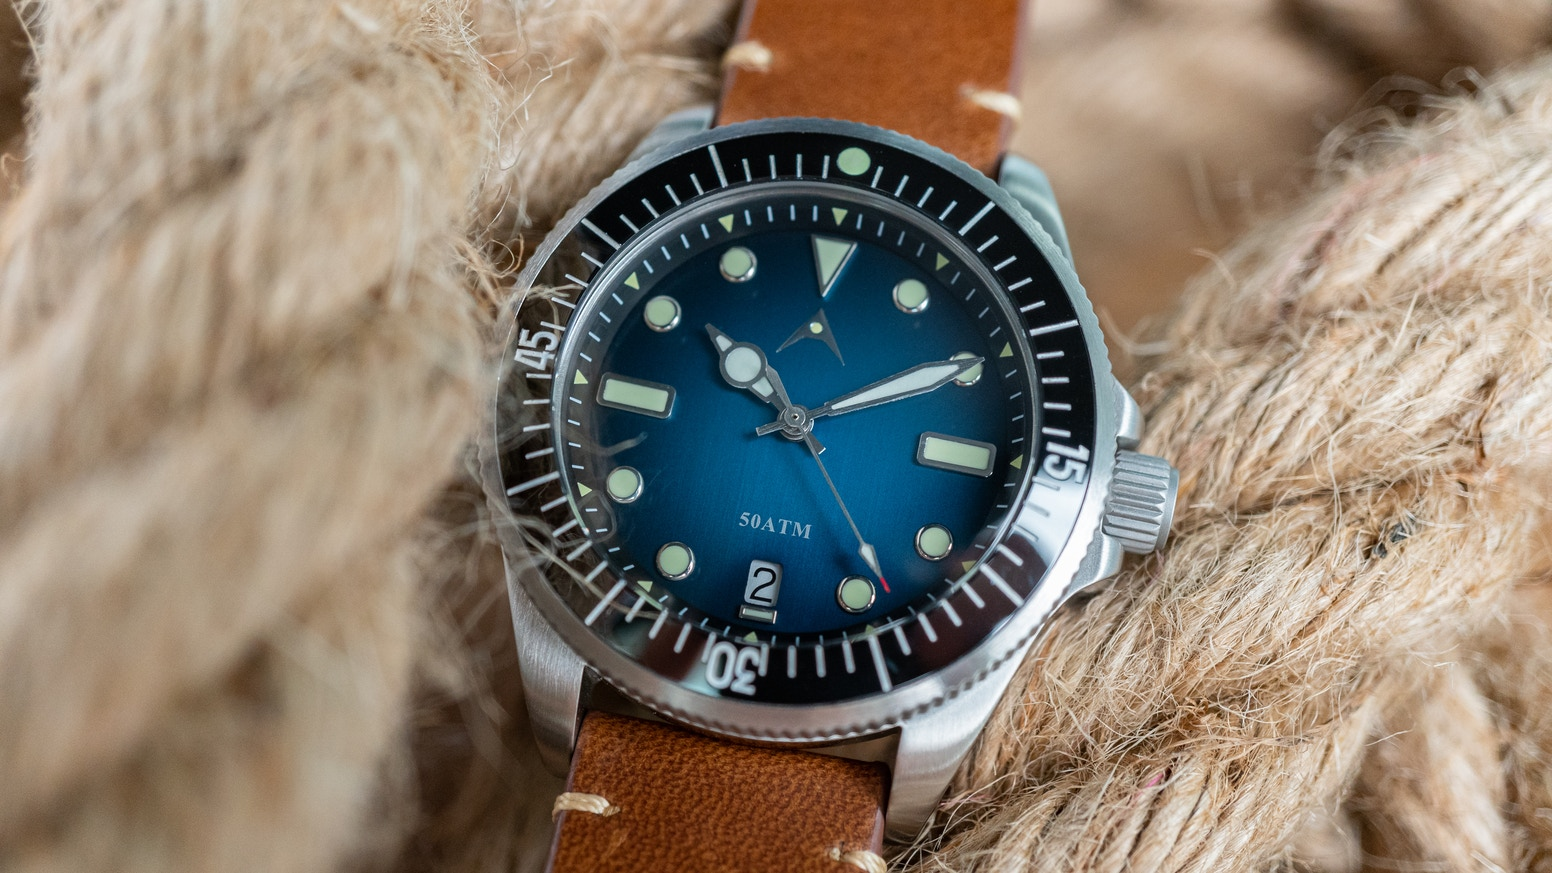 A good value retro diver inspired dive watch with the concept of heritage and modernity, design with functionality of both world